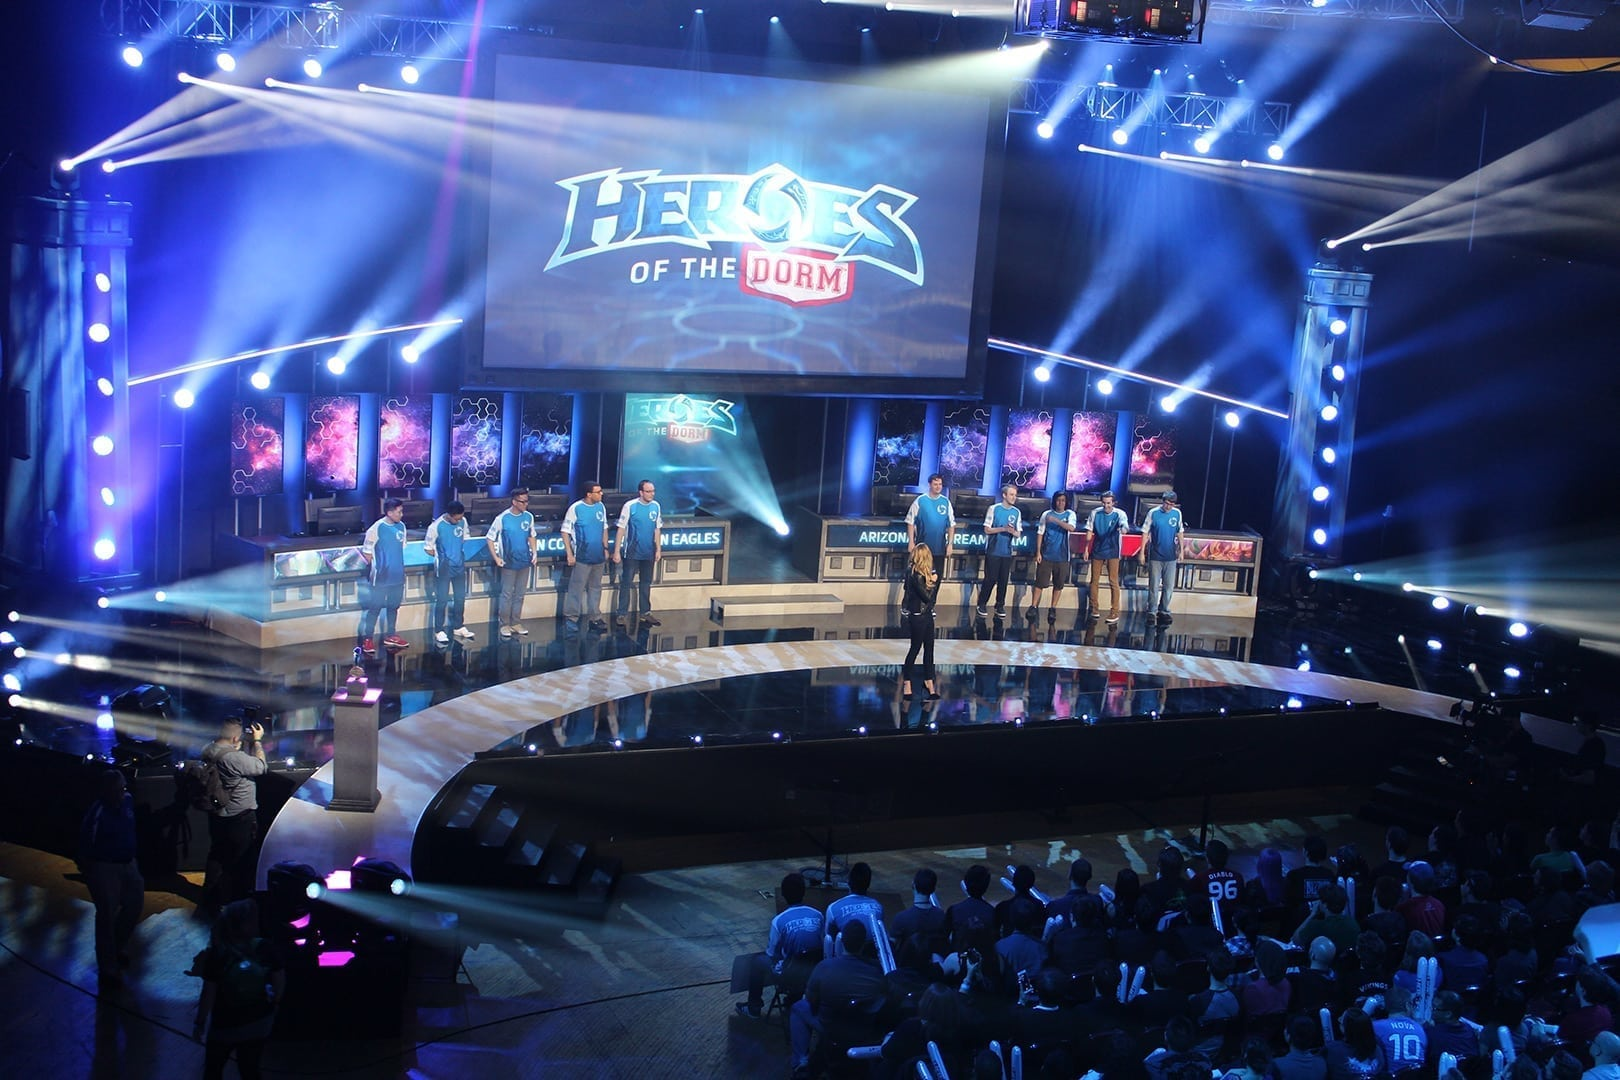 Heroes of the Dorm event photo